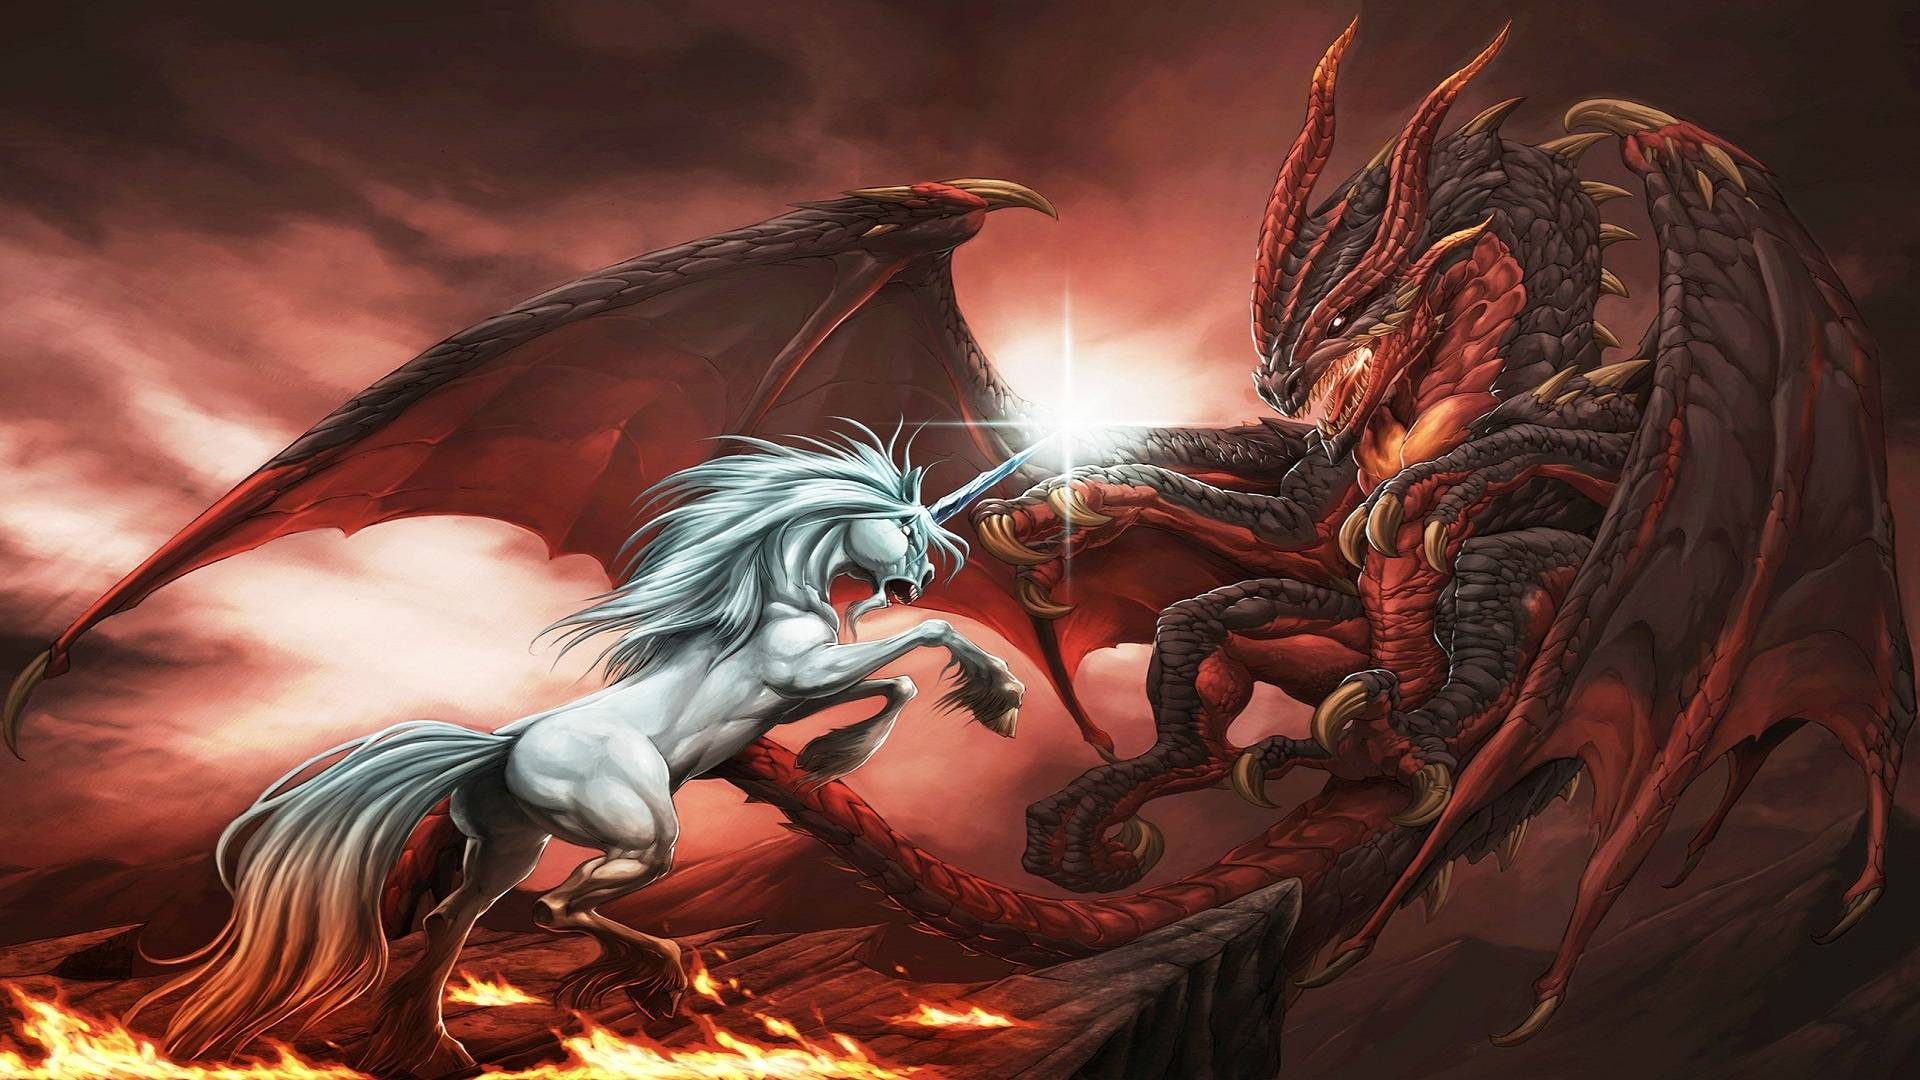 fantasy_dragon_unicorn_war_abstract_hd-wallpaper-1574468